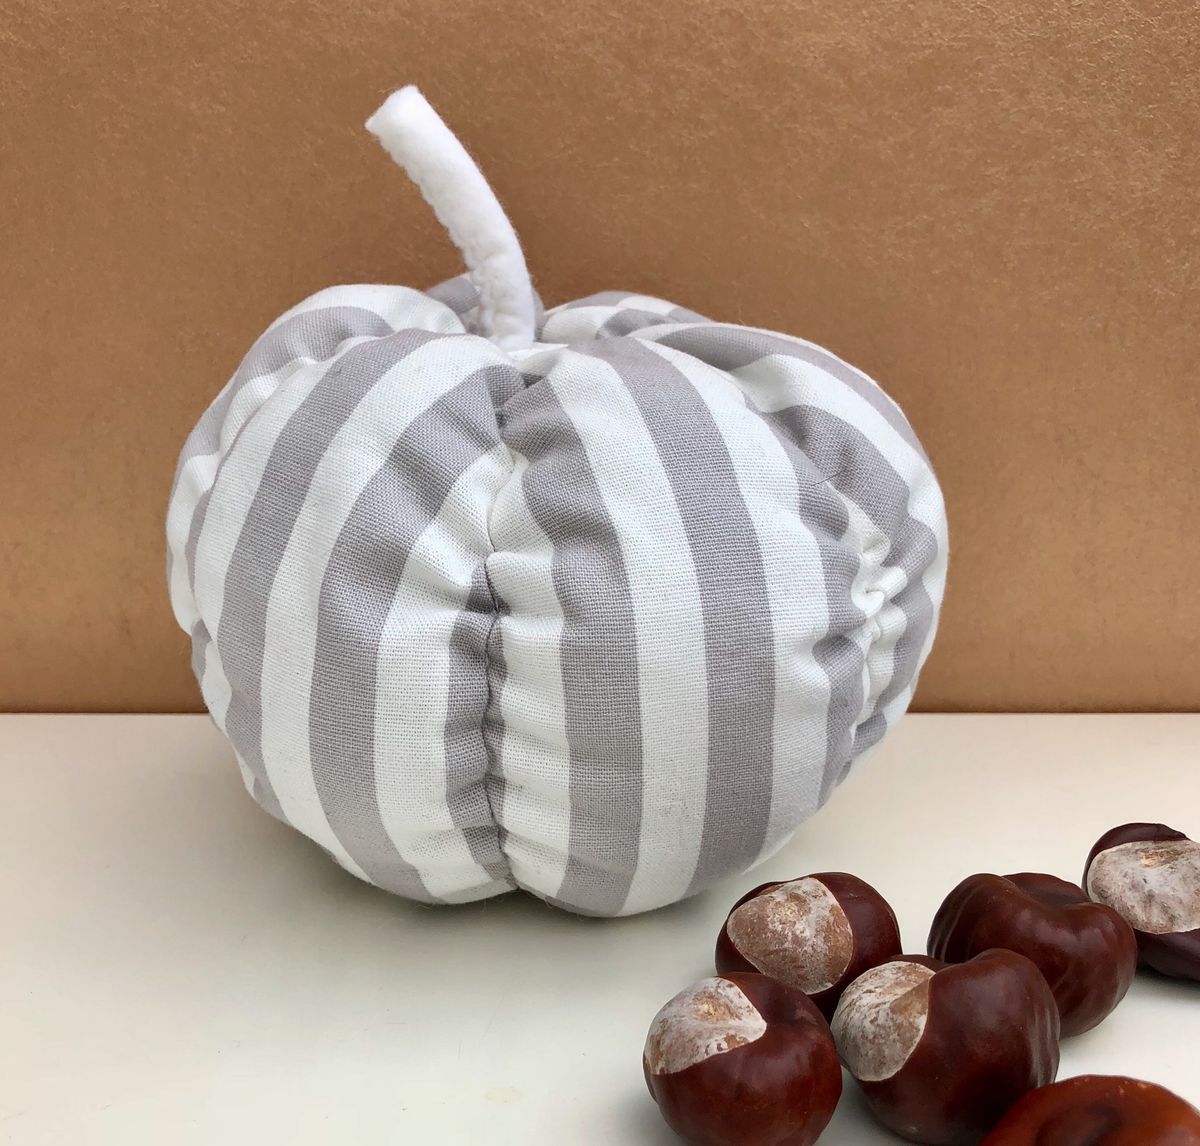 Decorative patterned pumpkin - product image